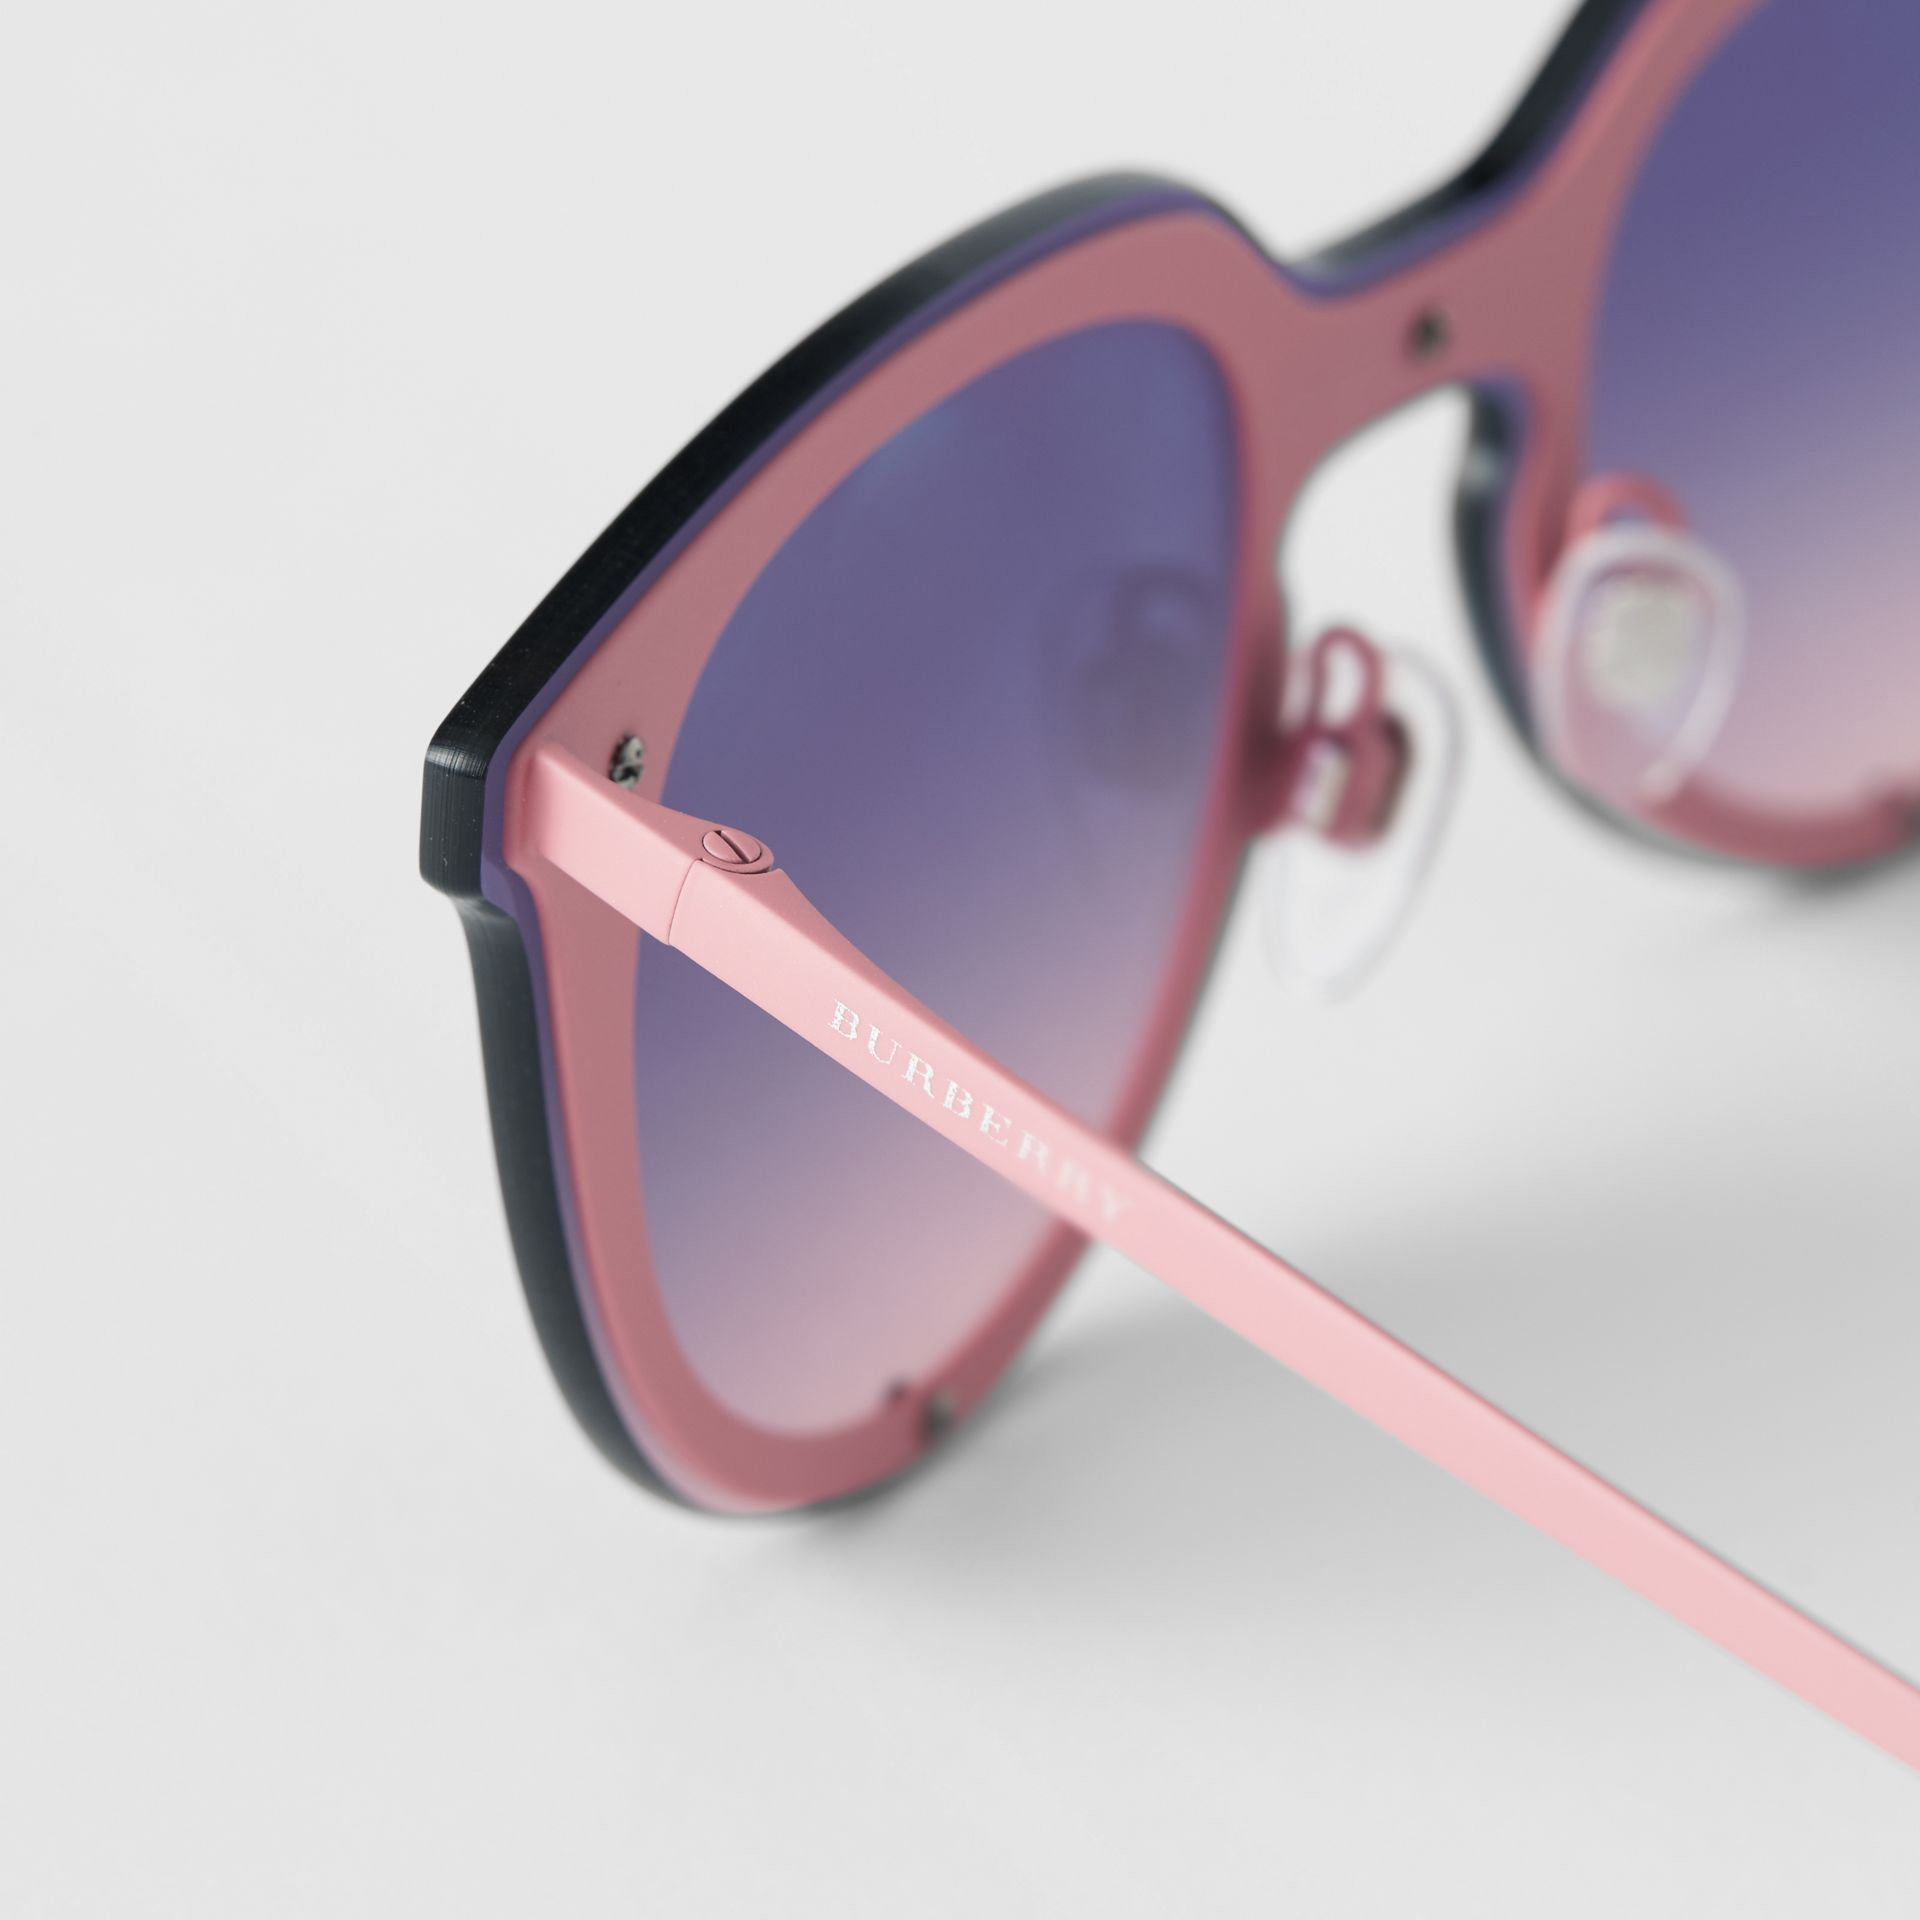 Keyhole Round Frame Shield Sunglasses in Pink - Women | Burberry Australia - gallery image 1